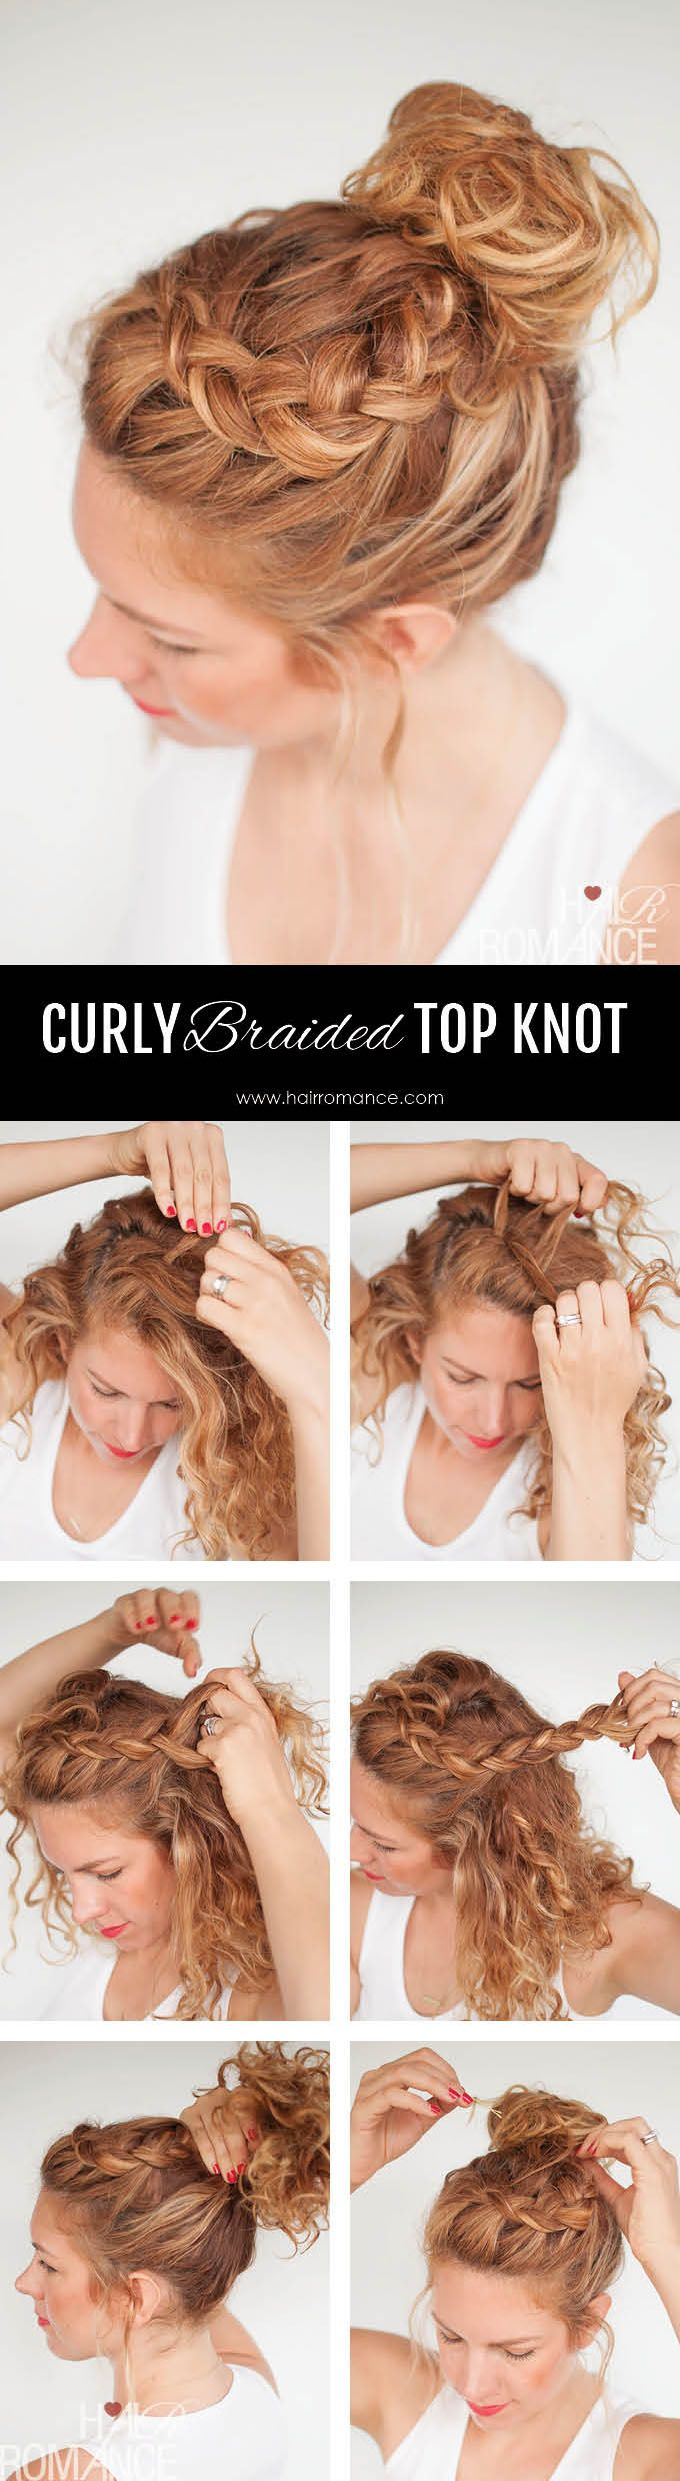 Everyday Curly Hairstyles Curly Braided Top Knot Hairstyle Tutorial Hair Styles Hair Romance Curly Hair Styles Naturally